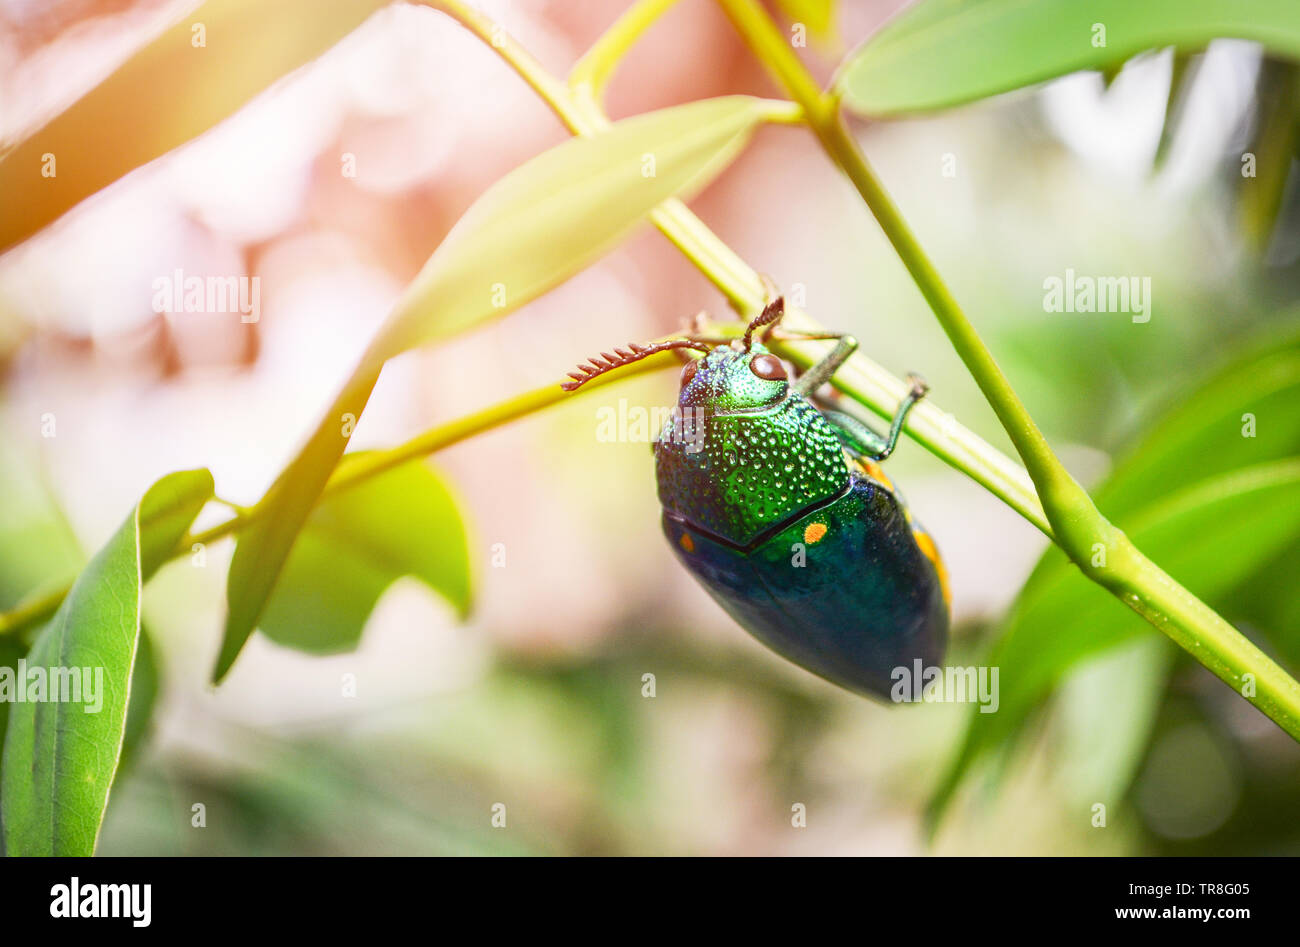 Jewel beetle on the leaf tree branch nature background - Other names Metallic Wood boring / Buprestid green insect - Stock Image